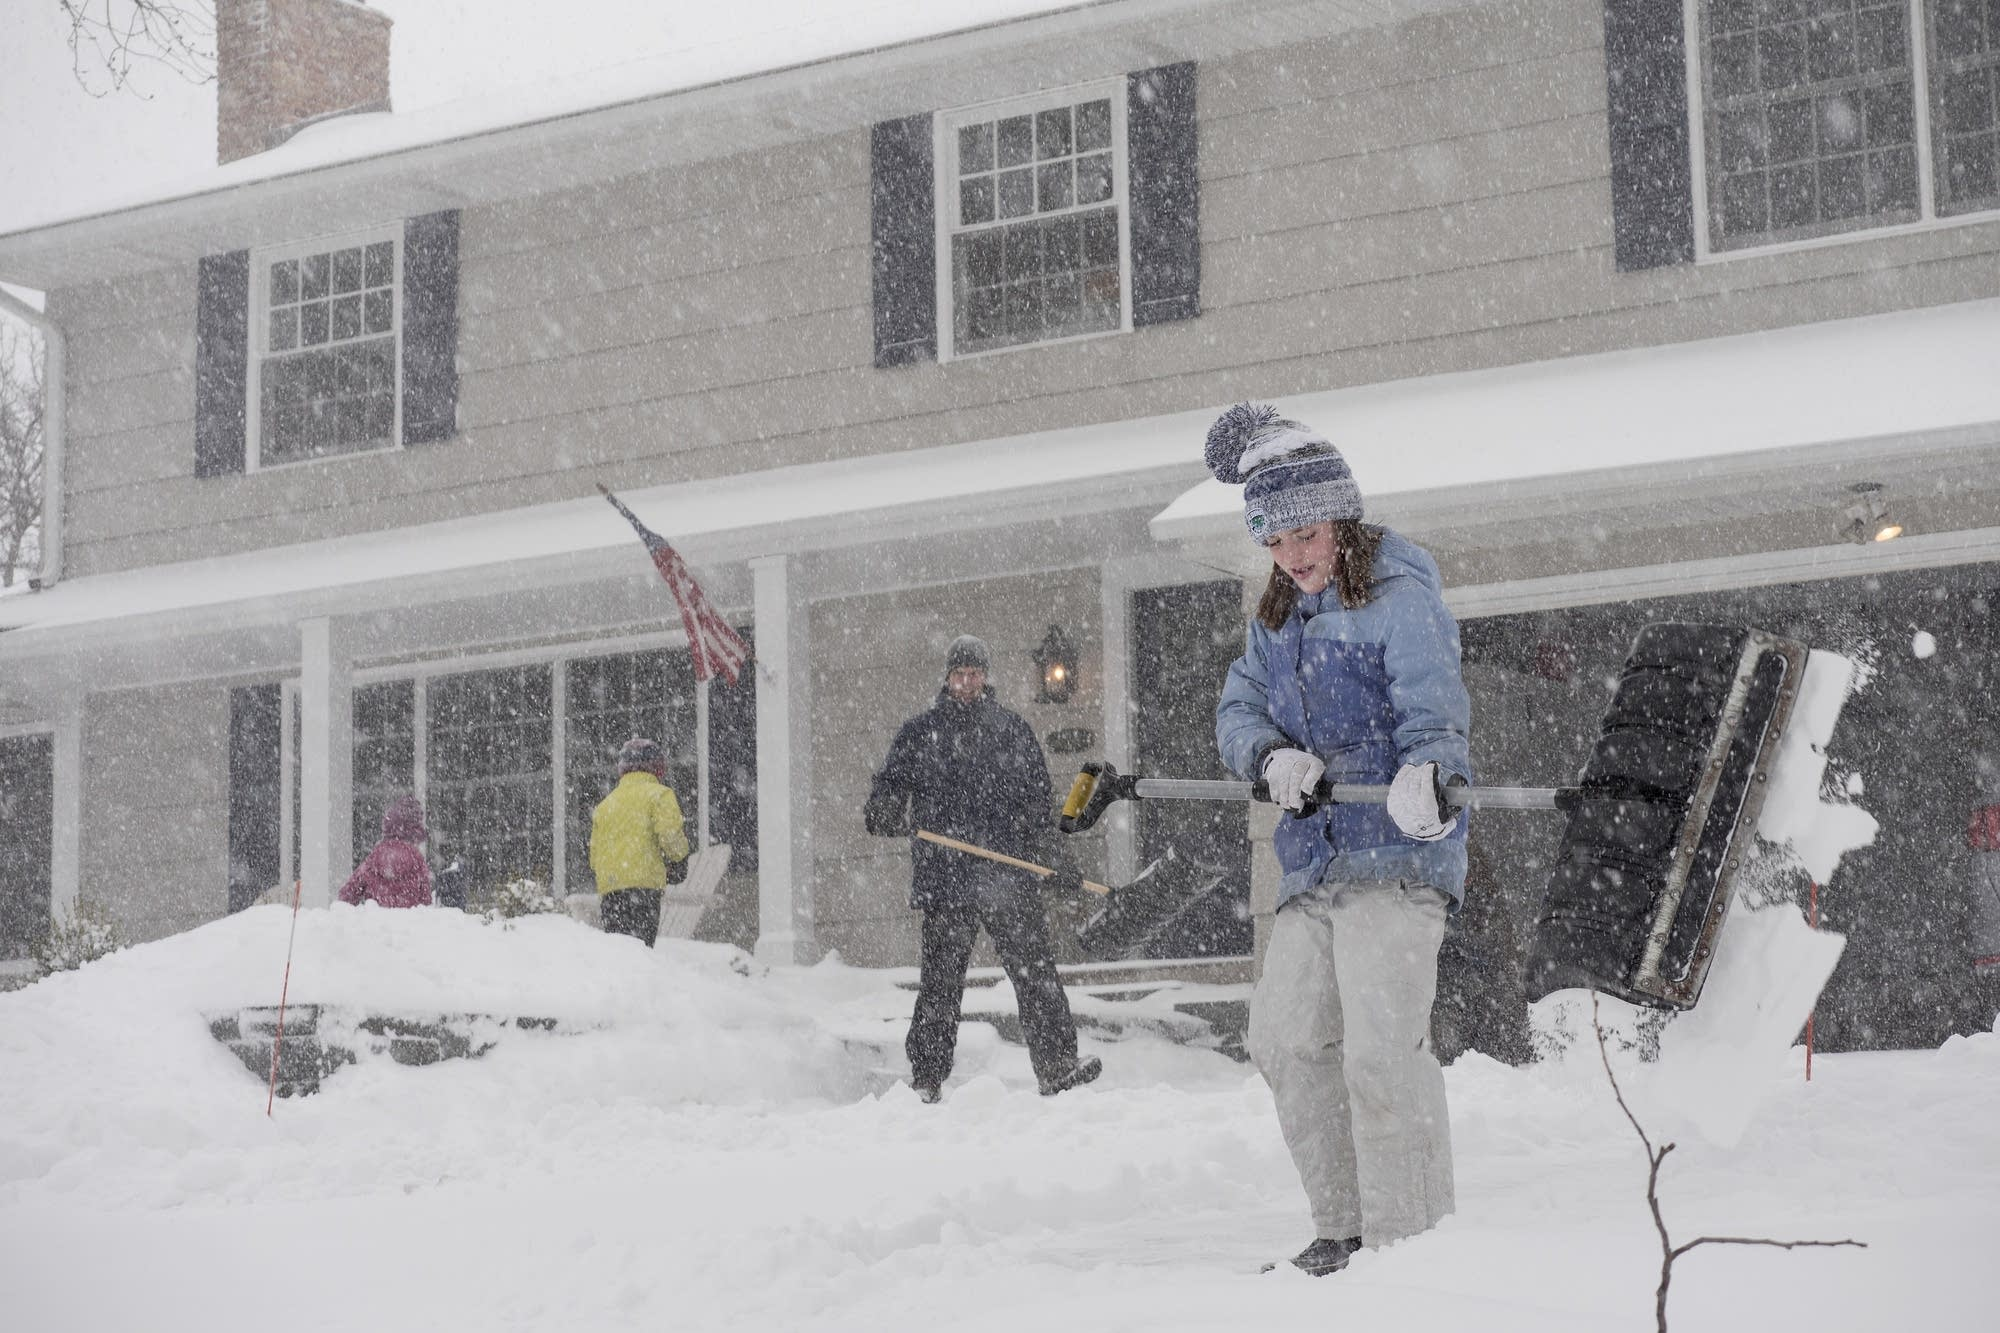 Maggie Farley, 10, shovels the driveway with her dad, Dan, and siblings.